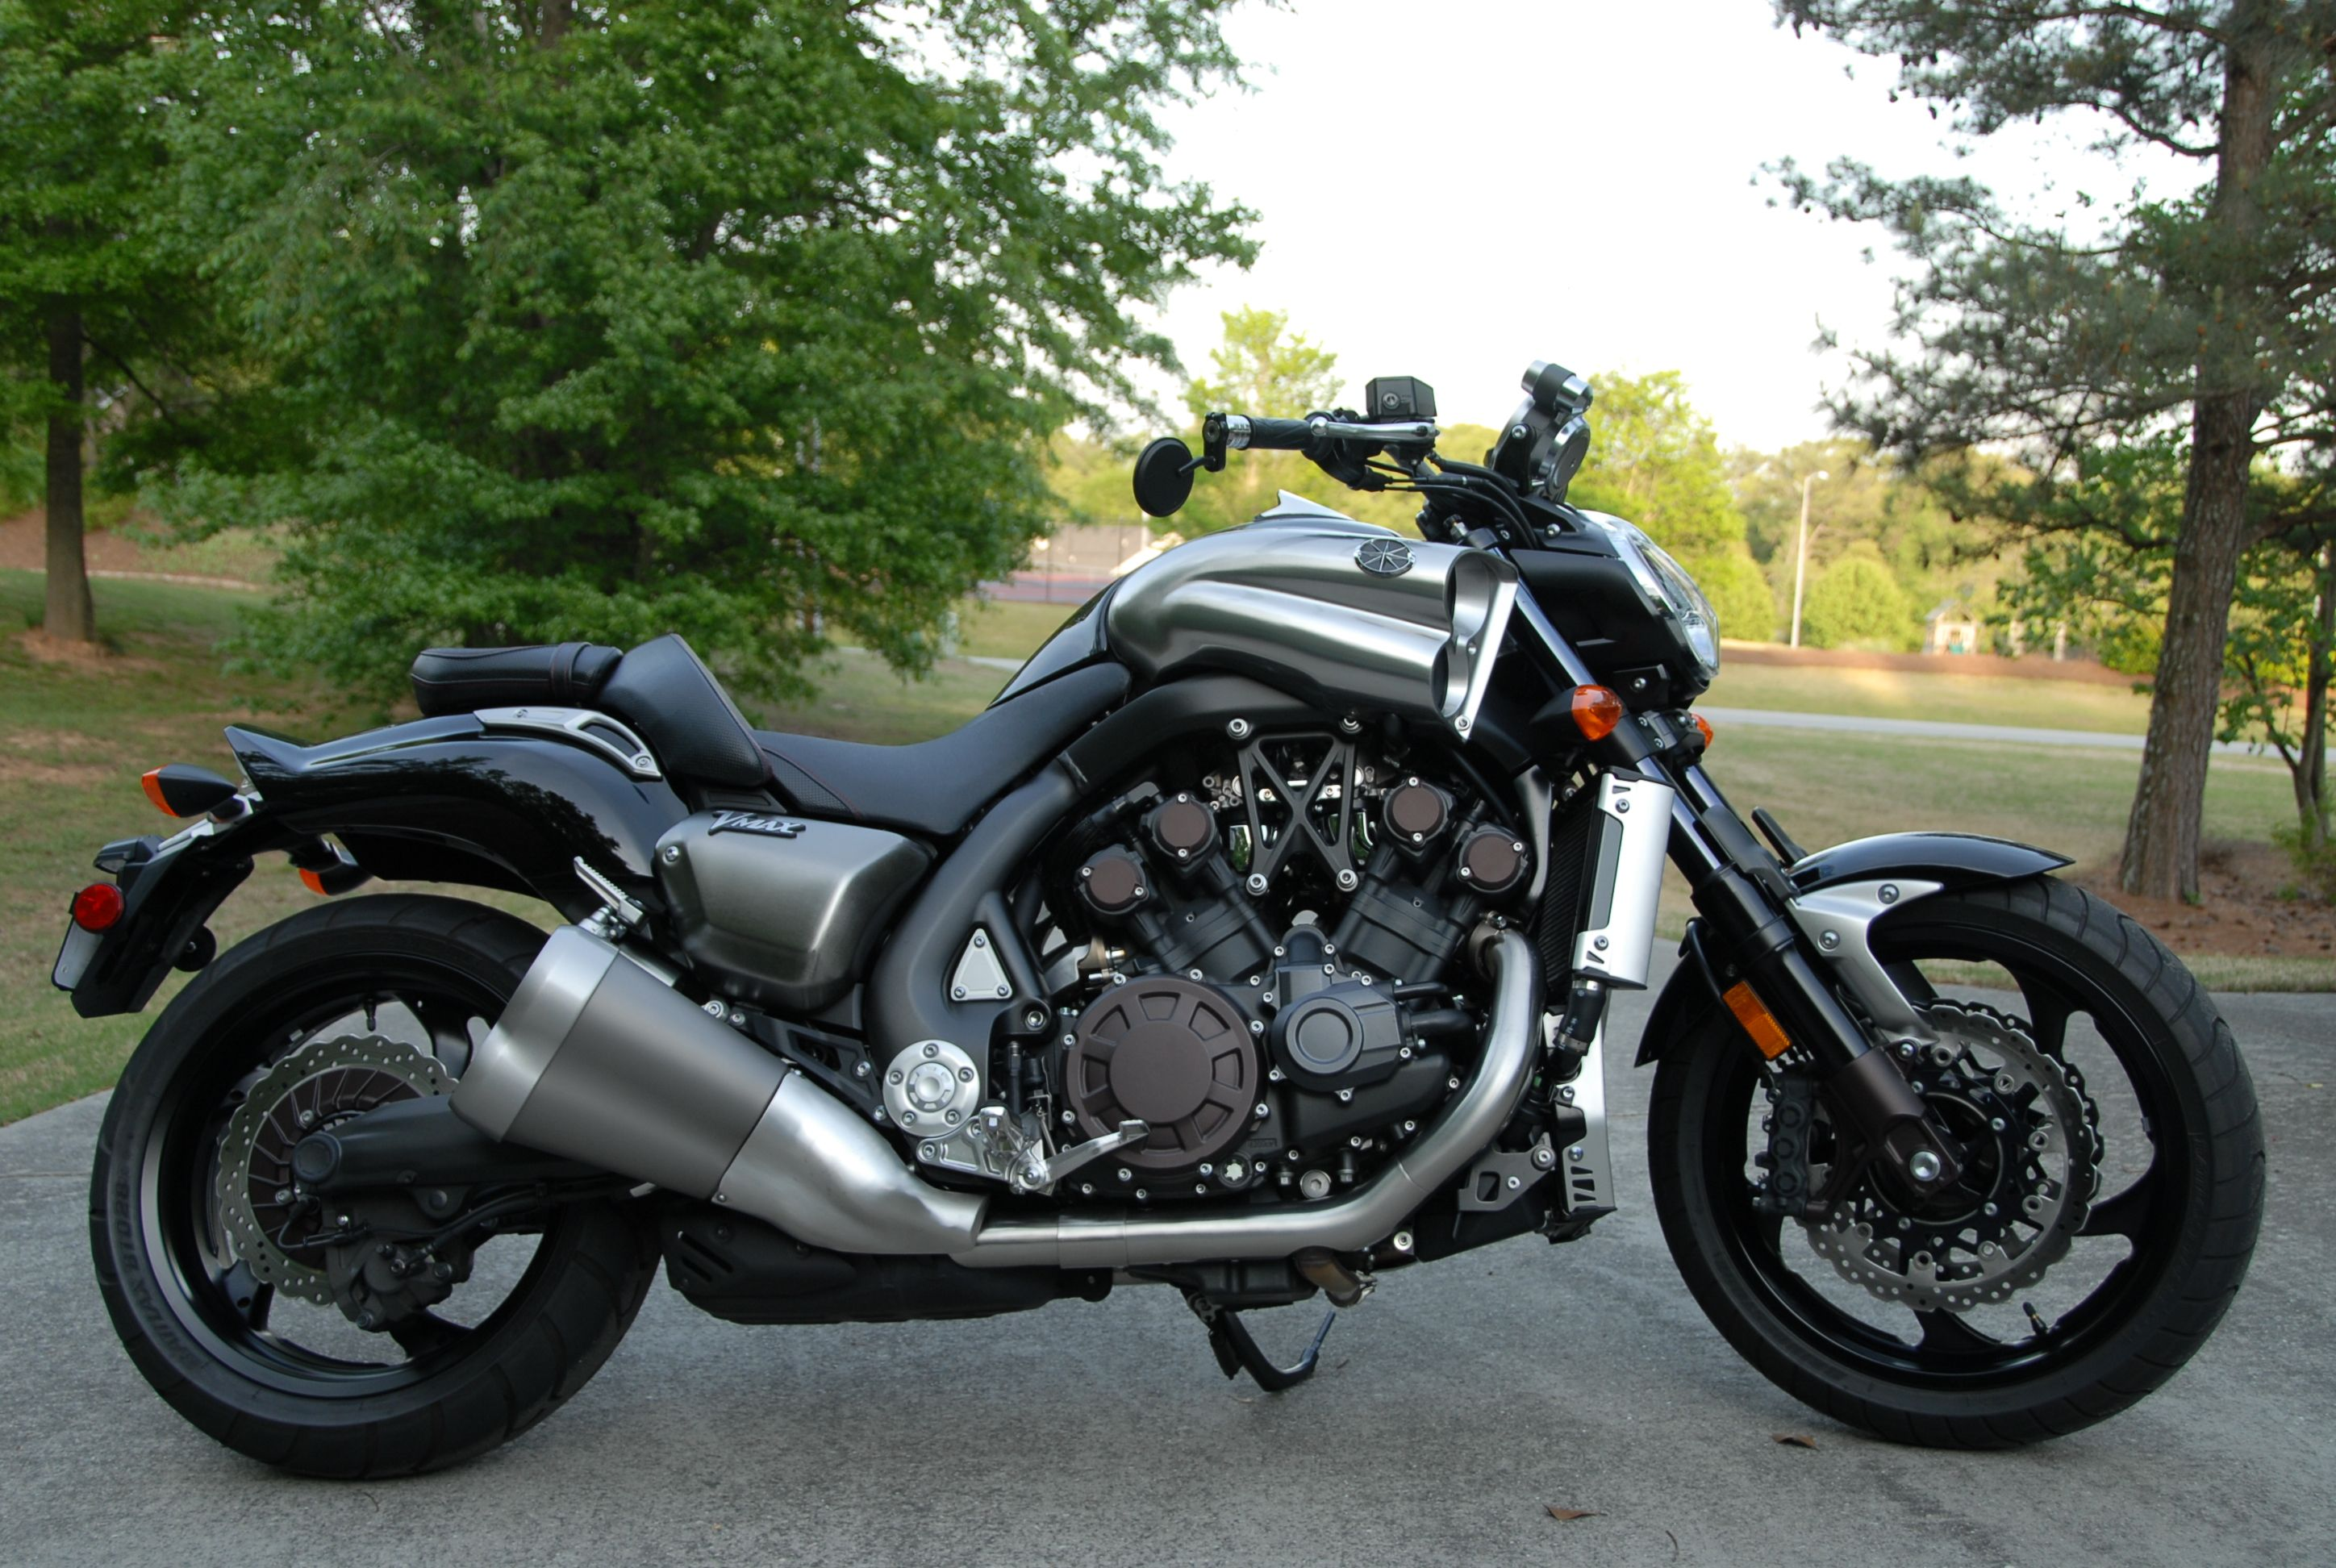 2009 Vmax still stock ONLY 197 Horsepower | Vmax and Motorcycles ...